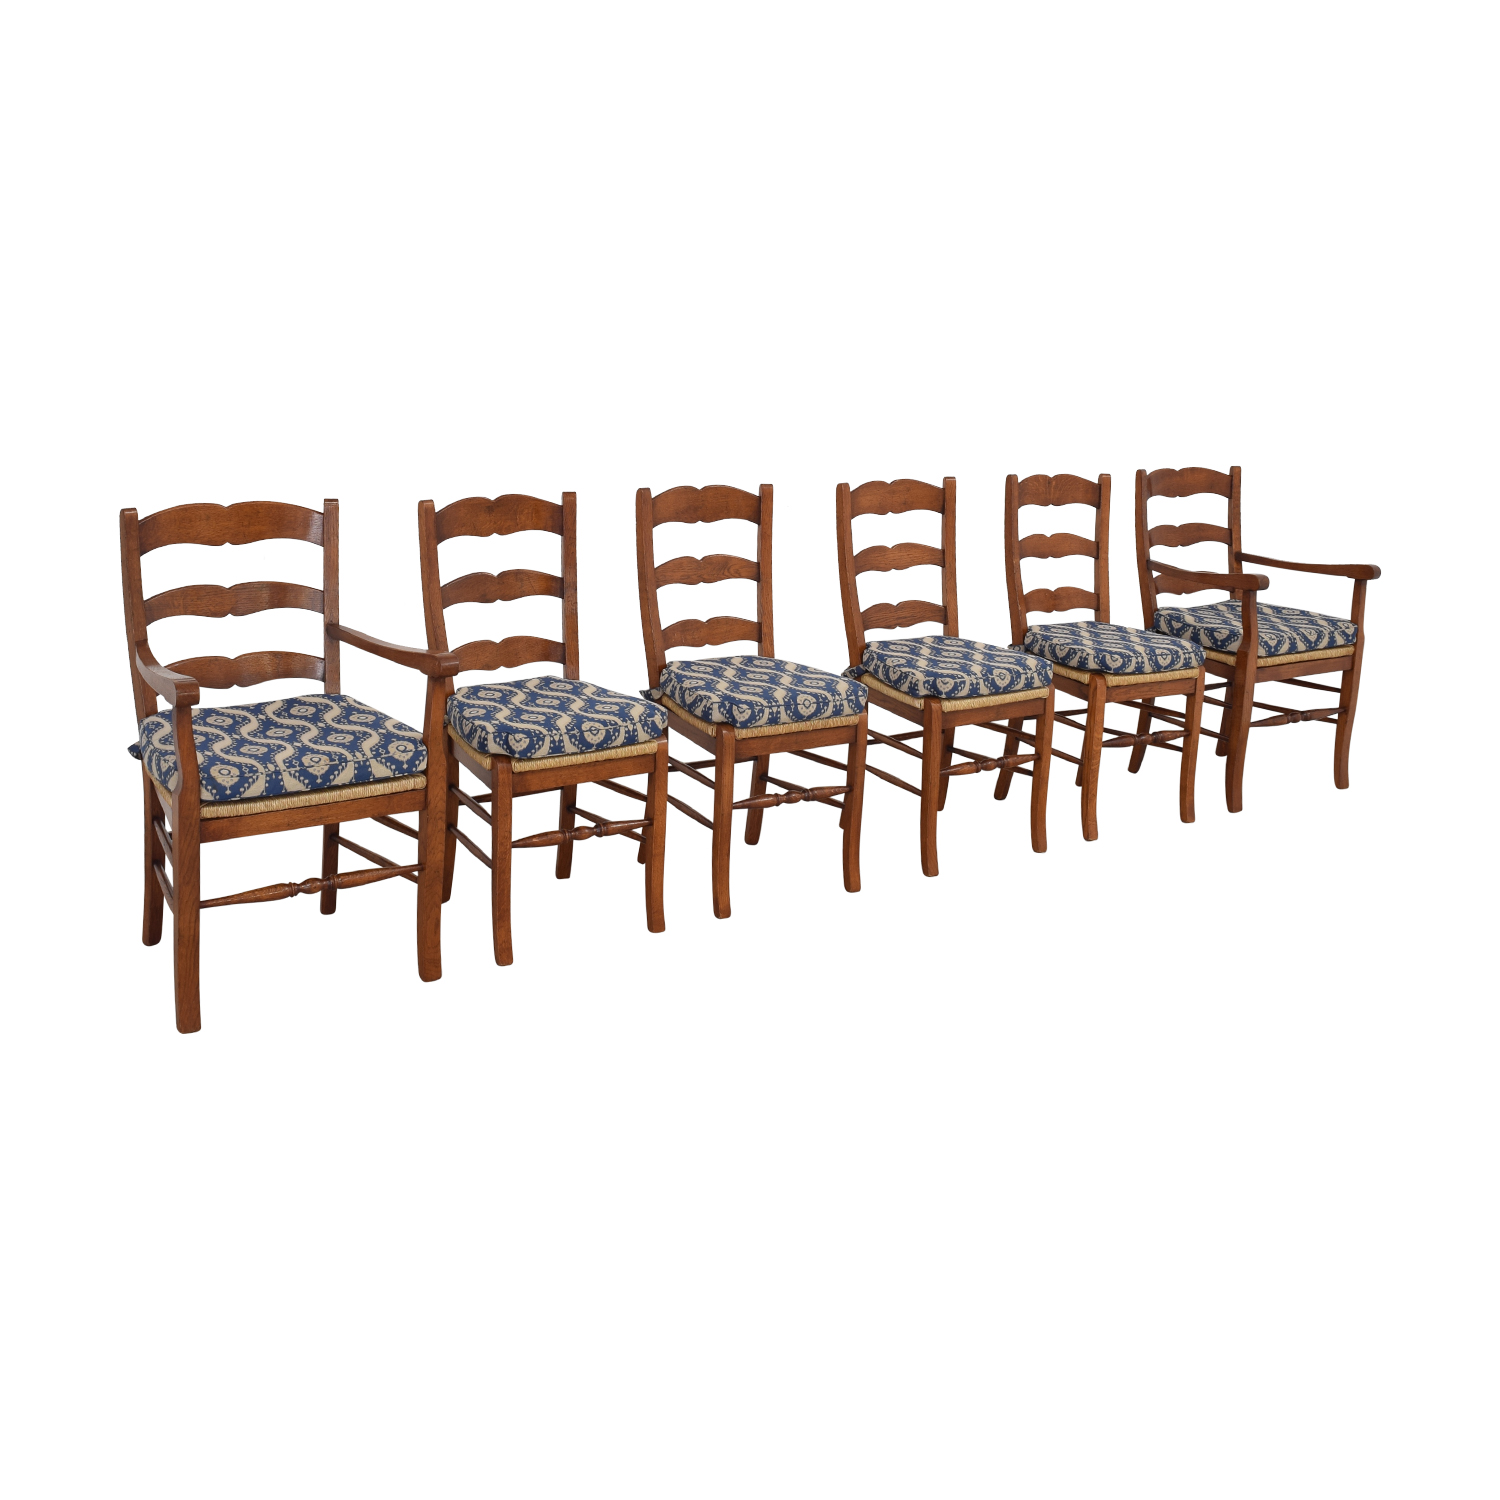 Ladder Back Cushioned Dining Chairs / Chairs